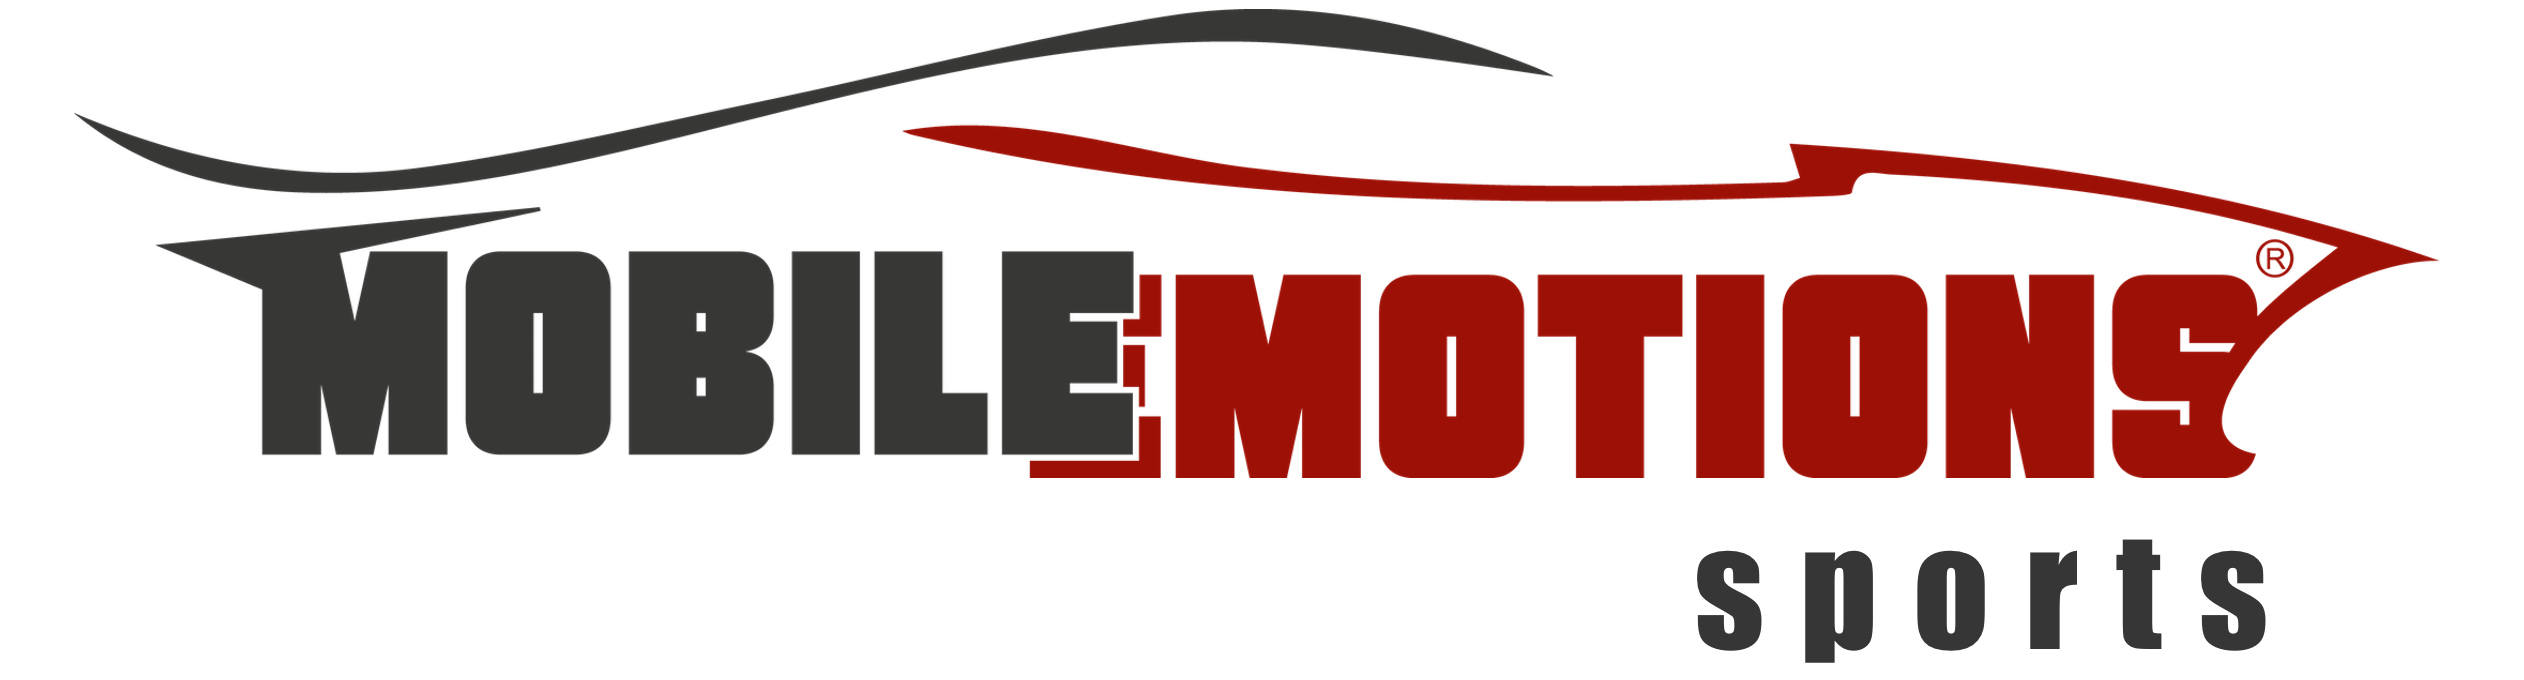 mobilemotions_sports Logo